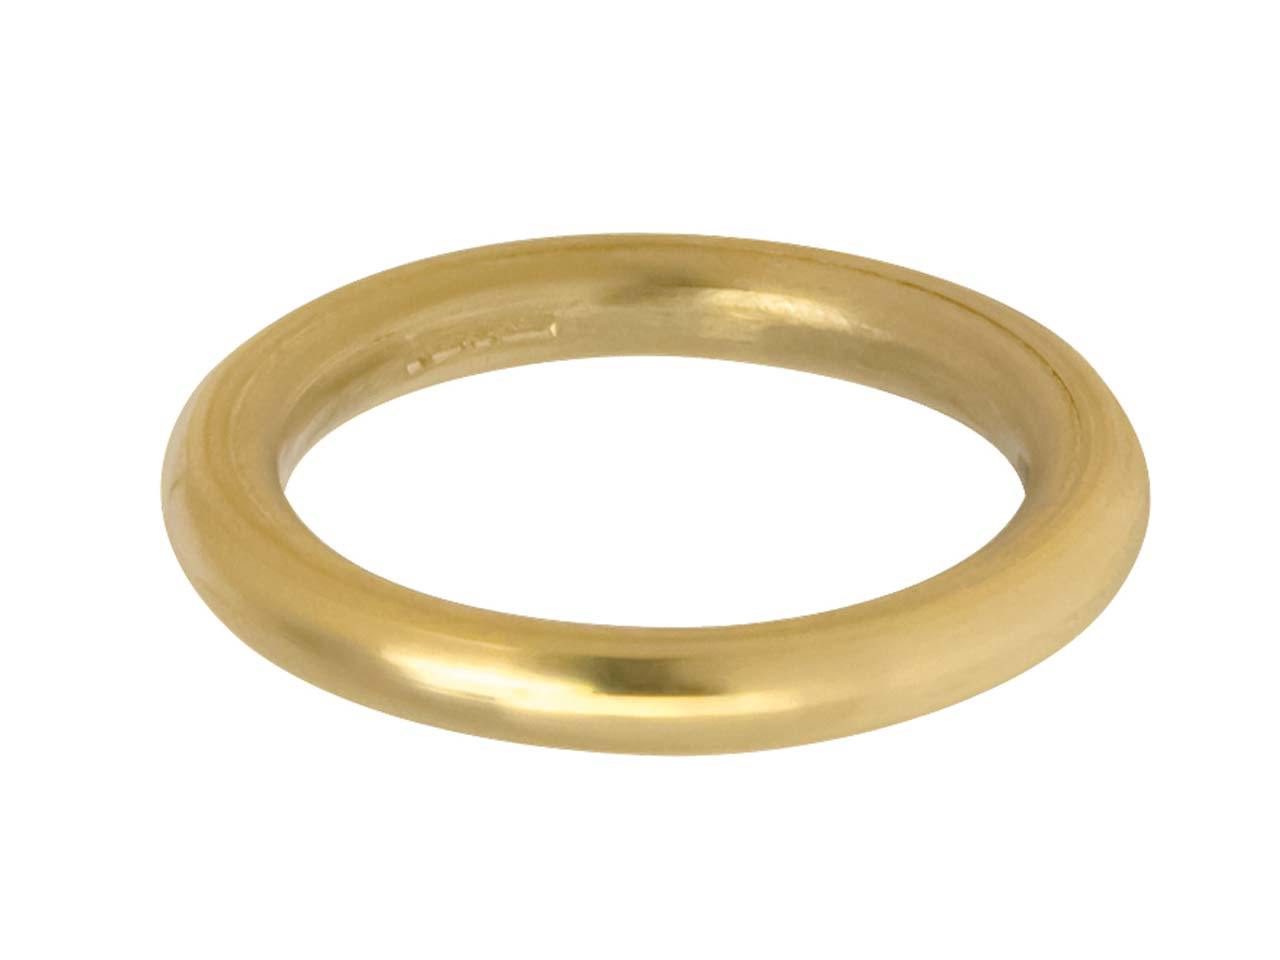 9ct Yellow Halo Wedding Ring 3.0mm M 4.9gms Heavy Weight Hallmarked   Wall Thickness 3.00mm